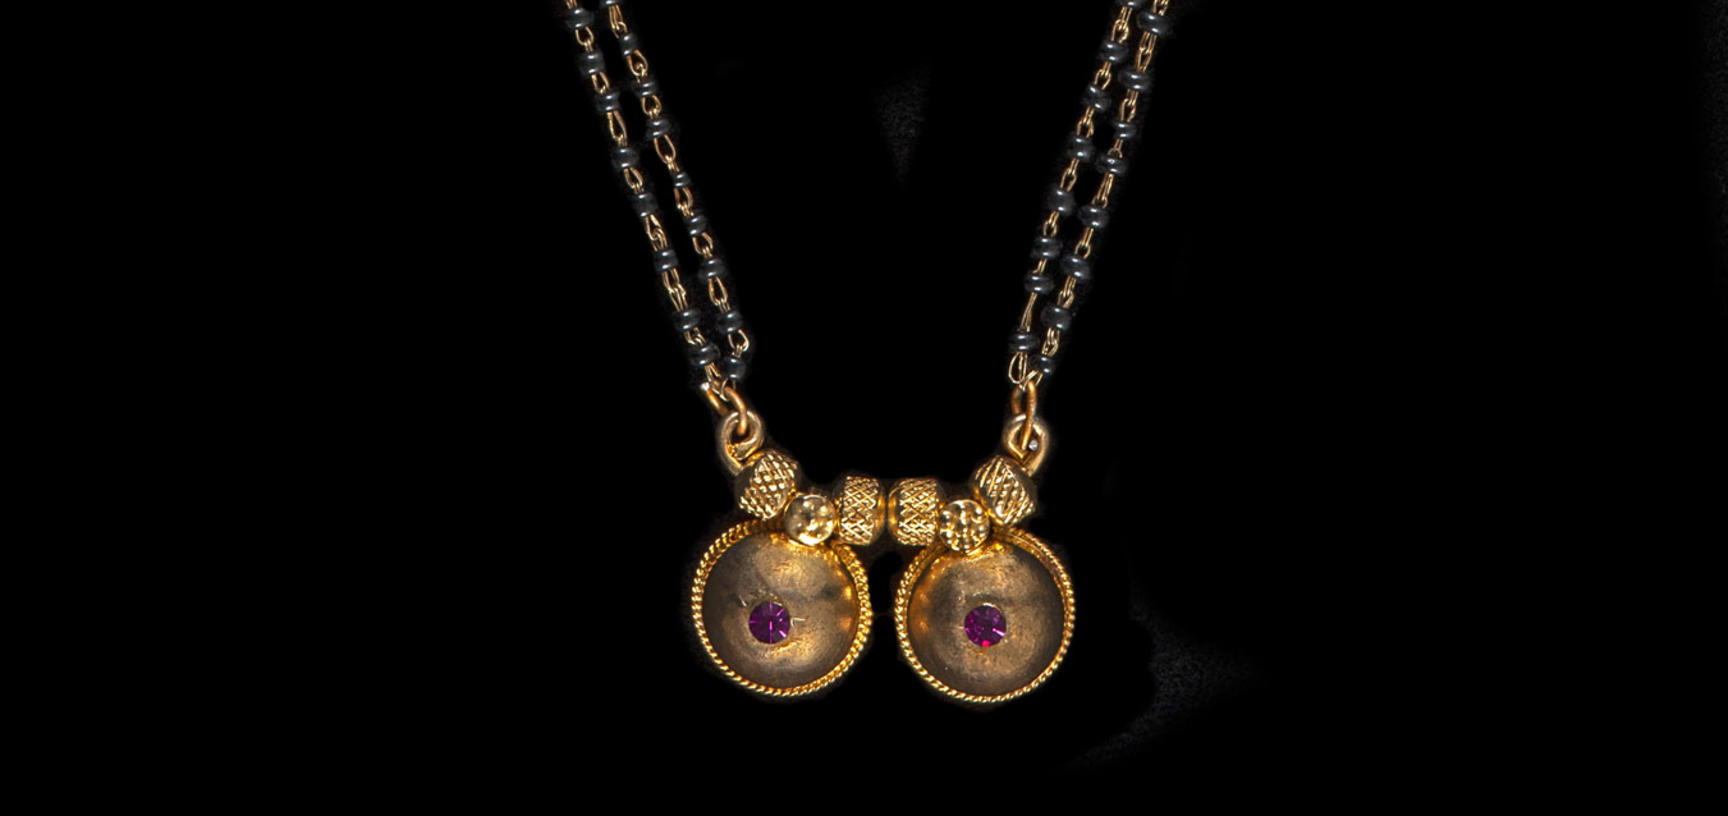 Long gold chain necklace with pendant in the form of two gold breasts